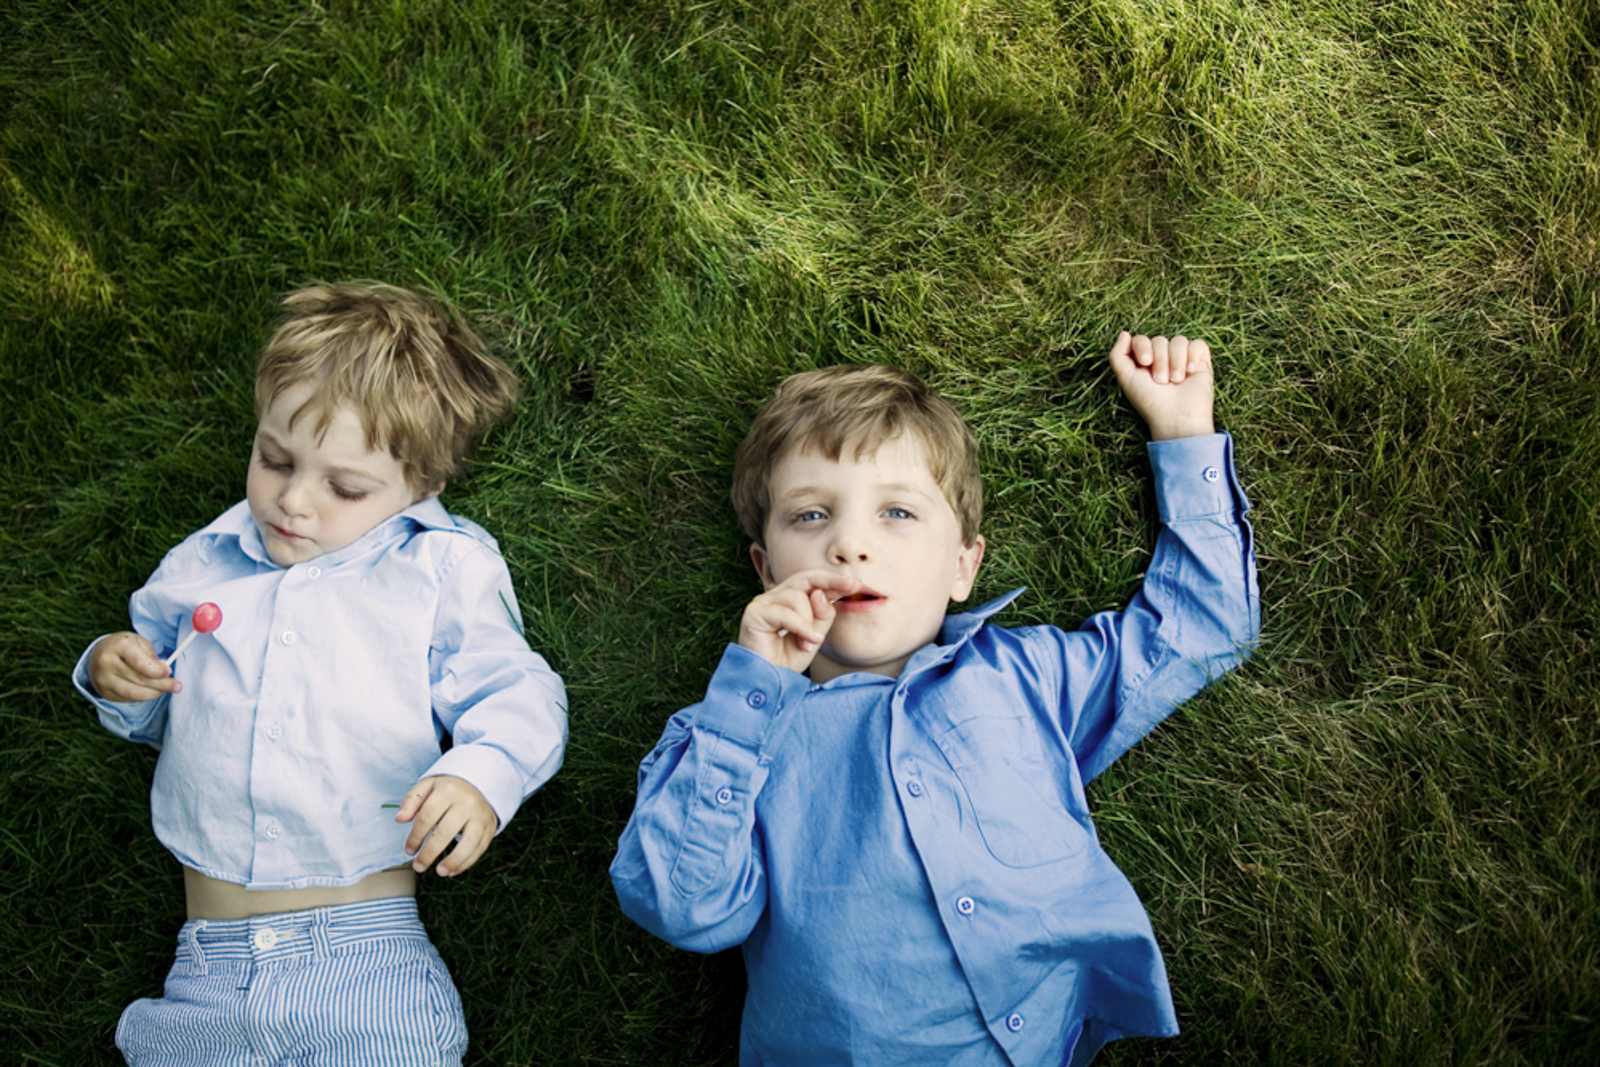 two young boys with lollipops on grass